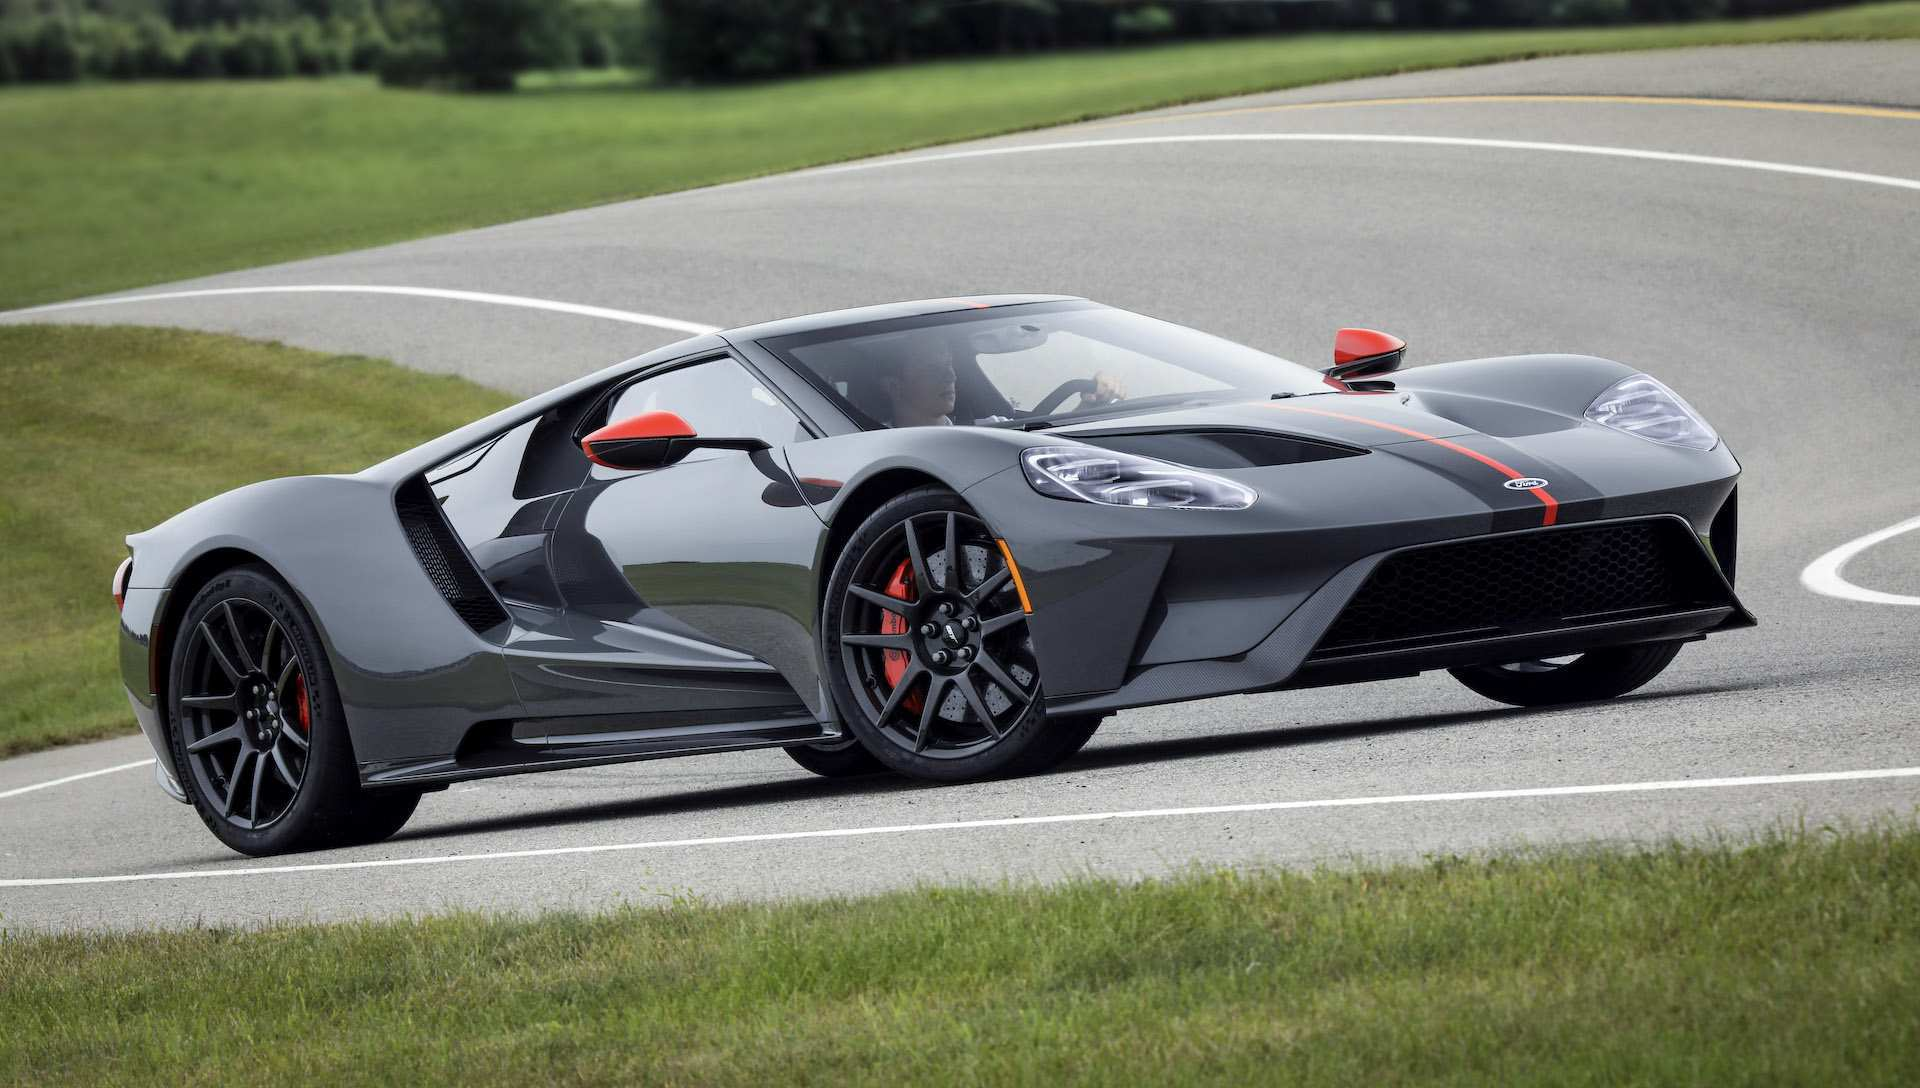 81 New 2019 Ford Gt Specs Wallpaper for 2019 Ford Gt Specs